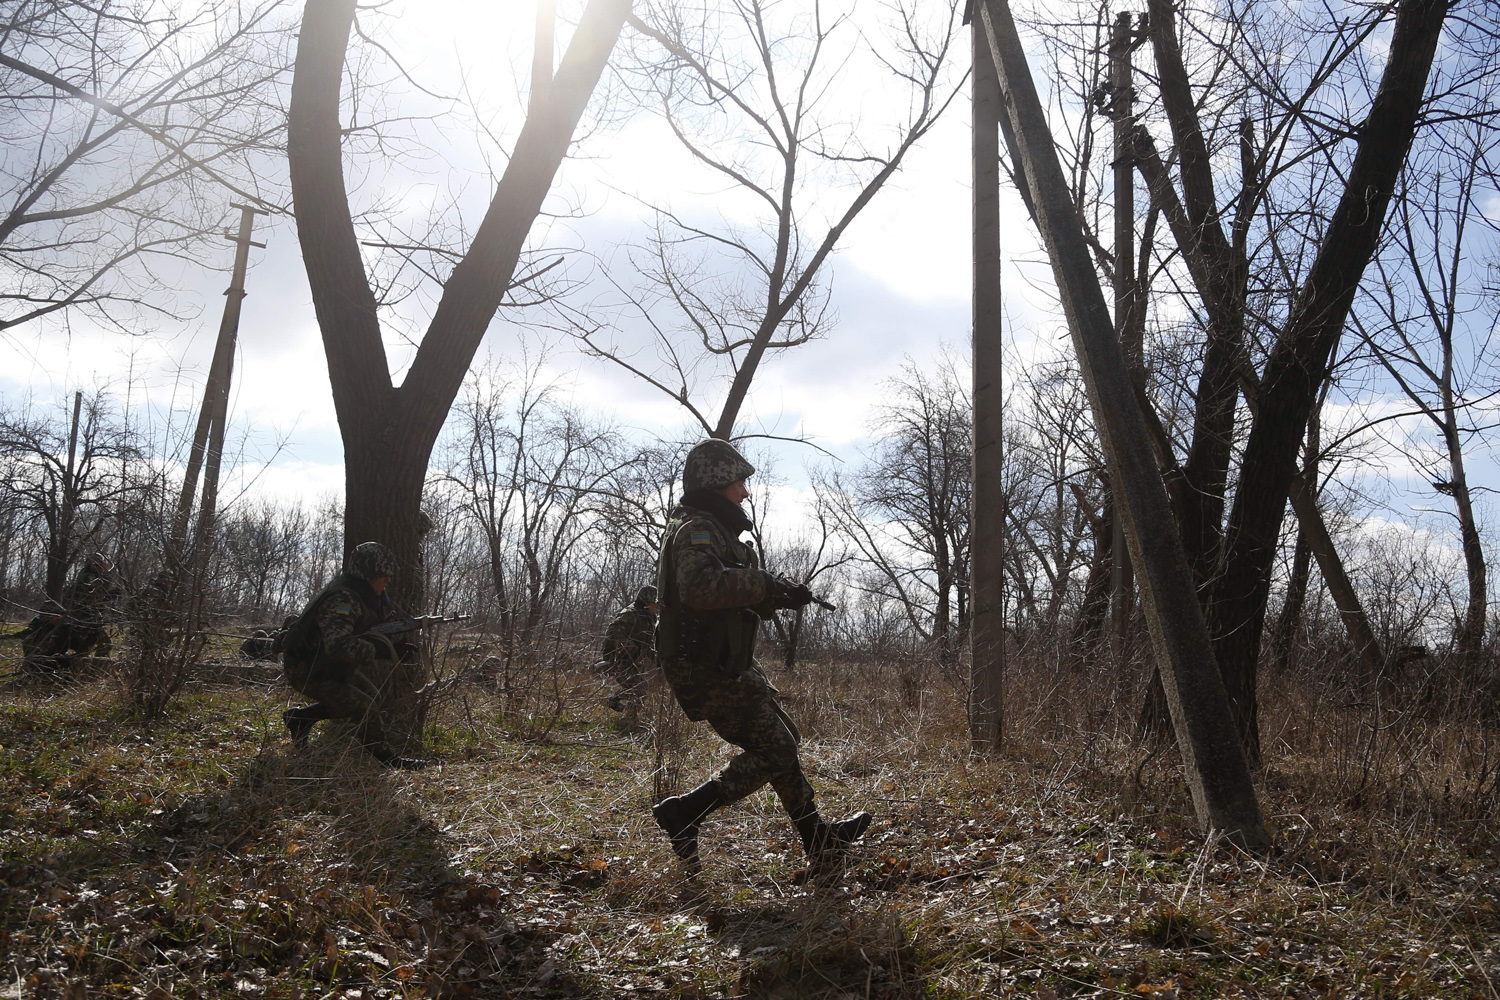 Mar. 21, 2014. Ukrainian border guards run to take their positions during training at a military camp in the village of Alekseyevka on the Ukrainian-Russian border.